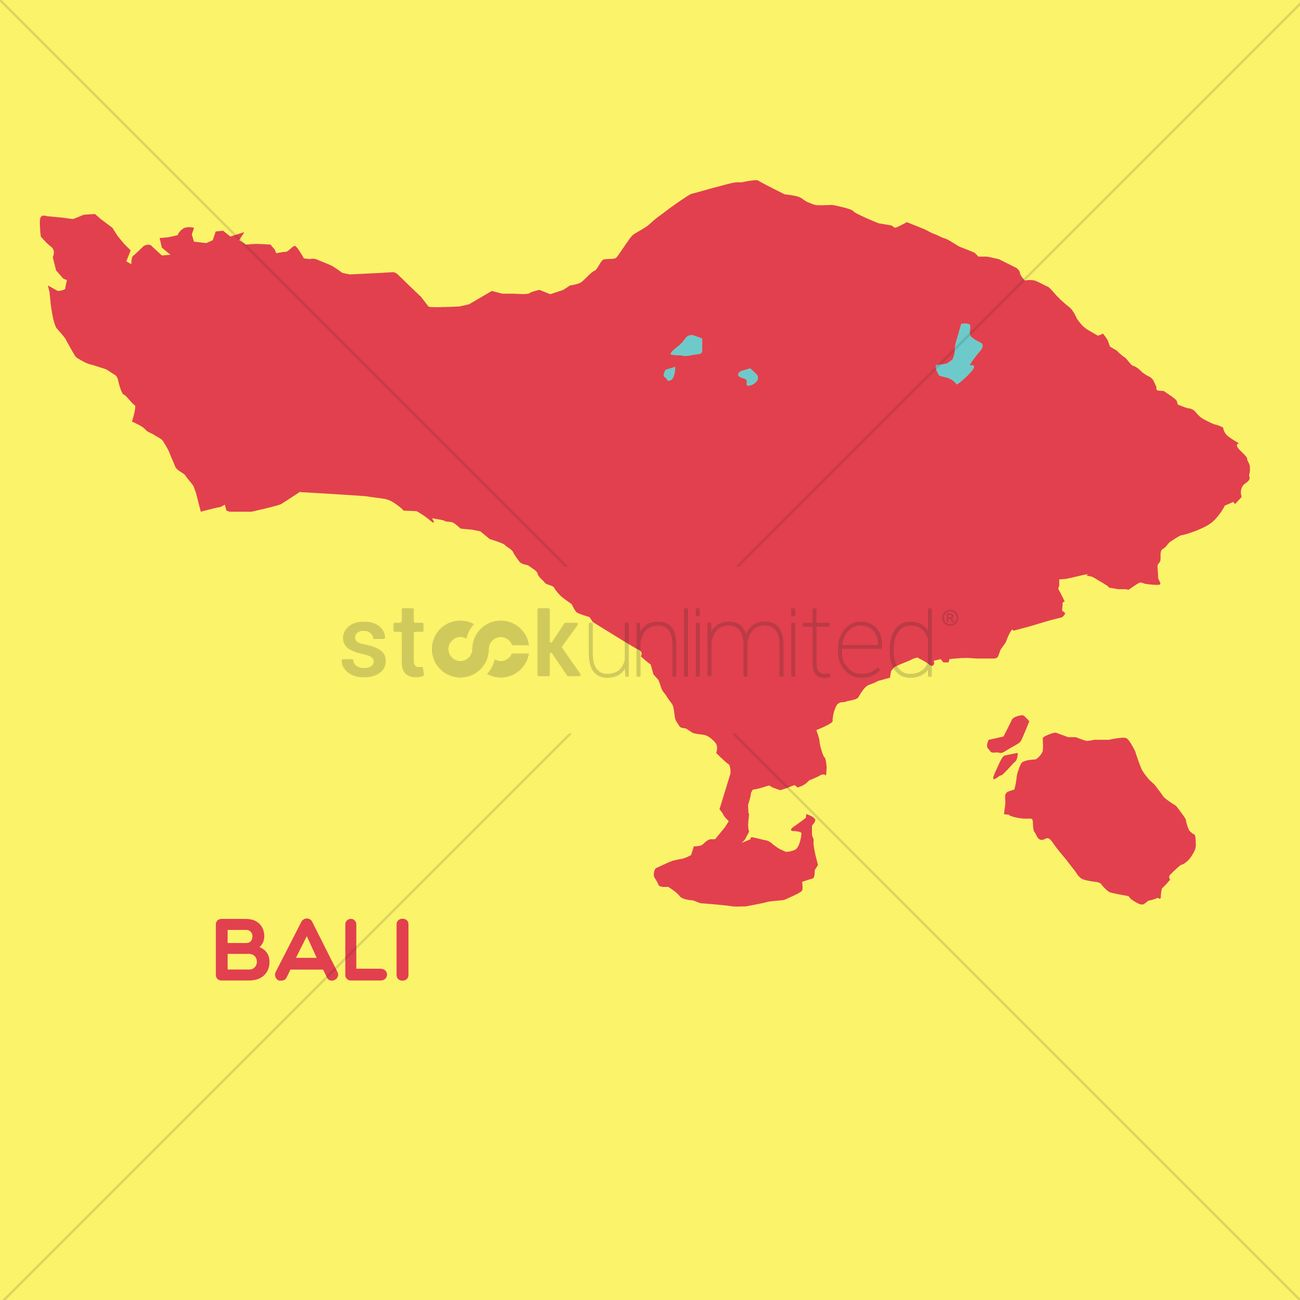 Map Of Bali Vector Image 1480426 Stockunlimited